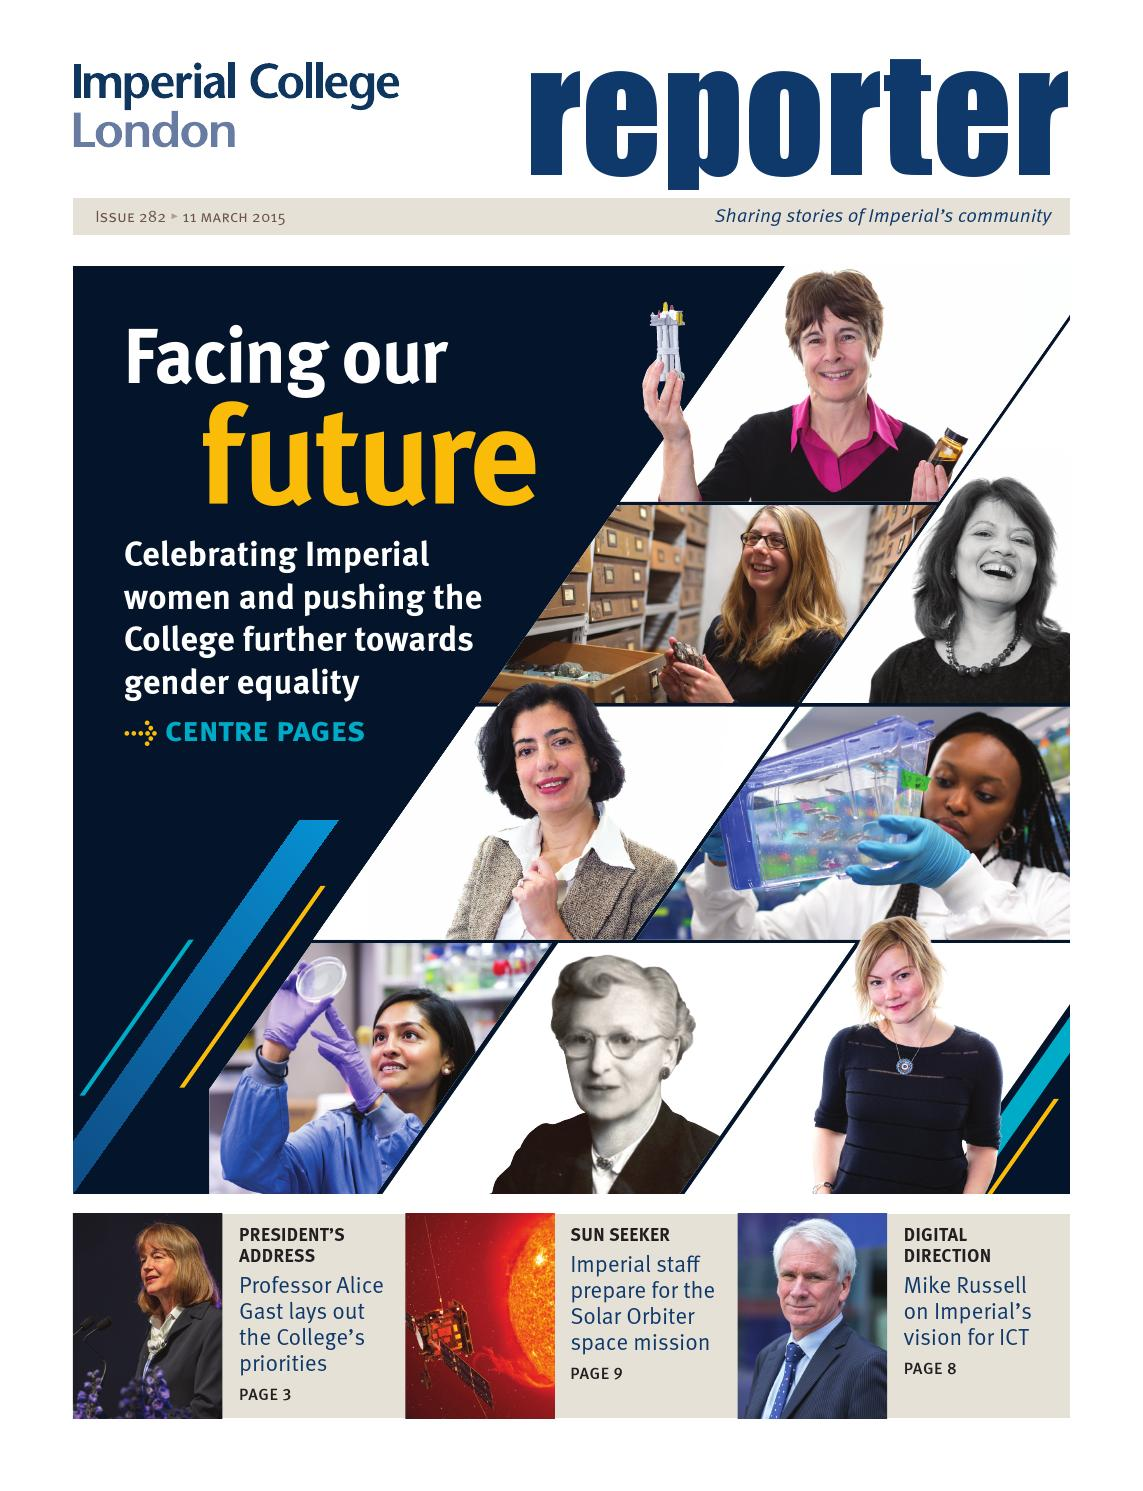 Reporter, issue 282 - 10 March 2013 by Imperial College London - issuu